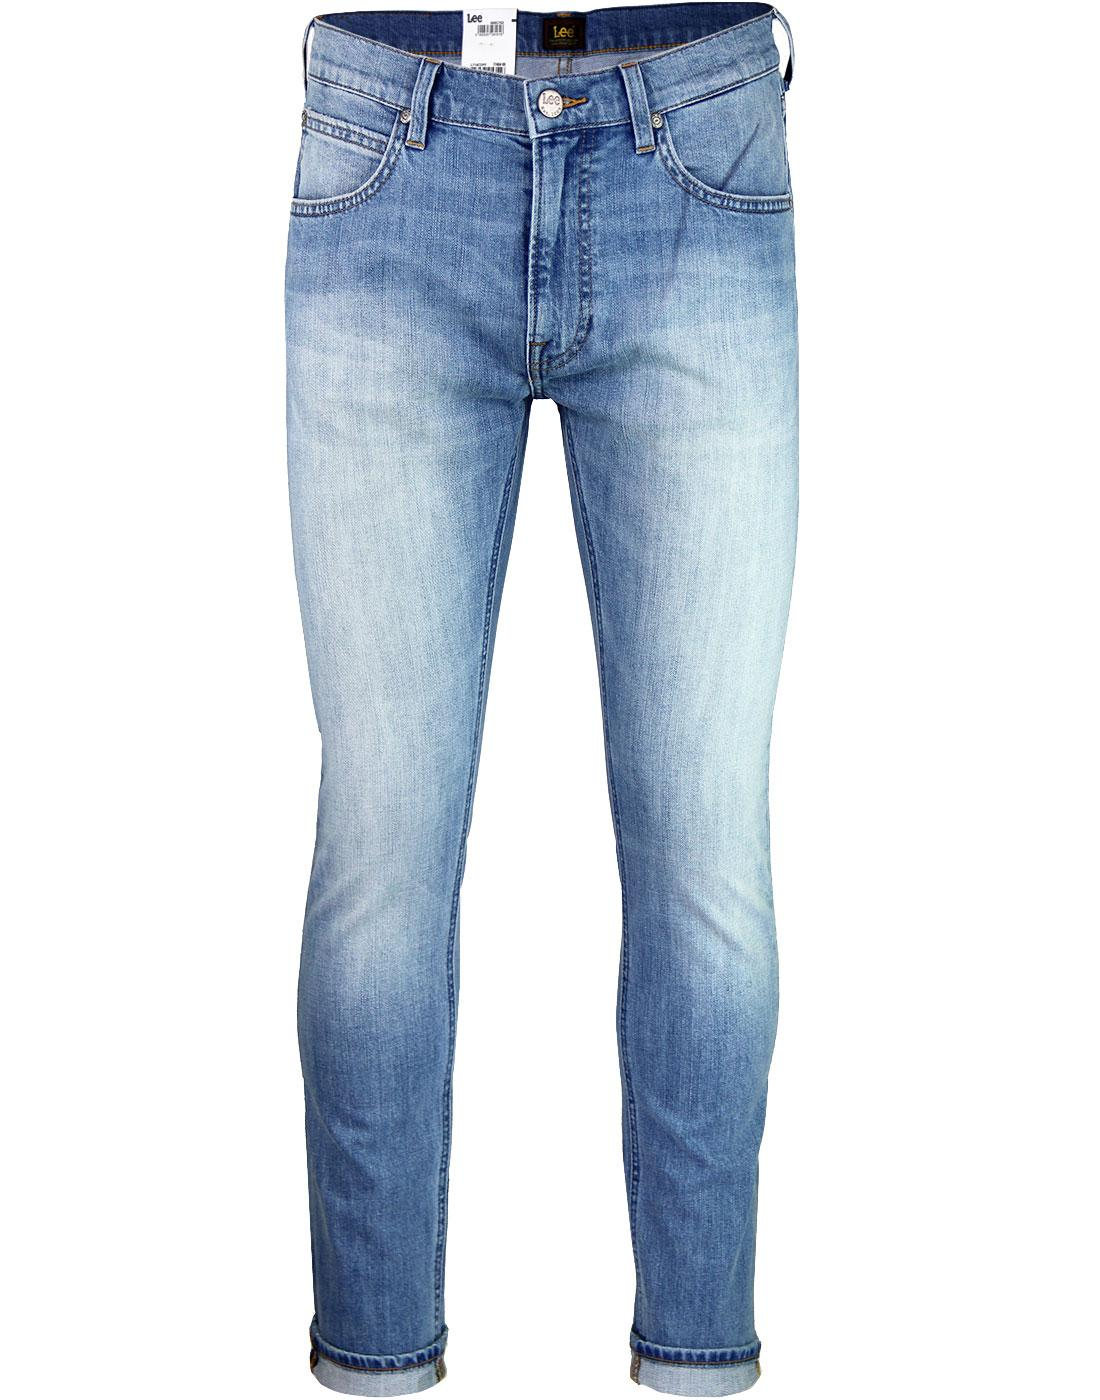 Luke LEE Slim Tapered Retro Denim Jeans KICK IT